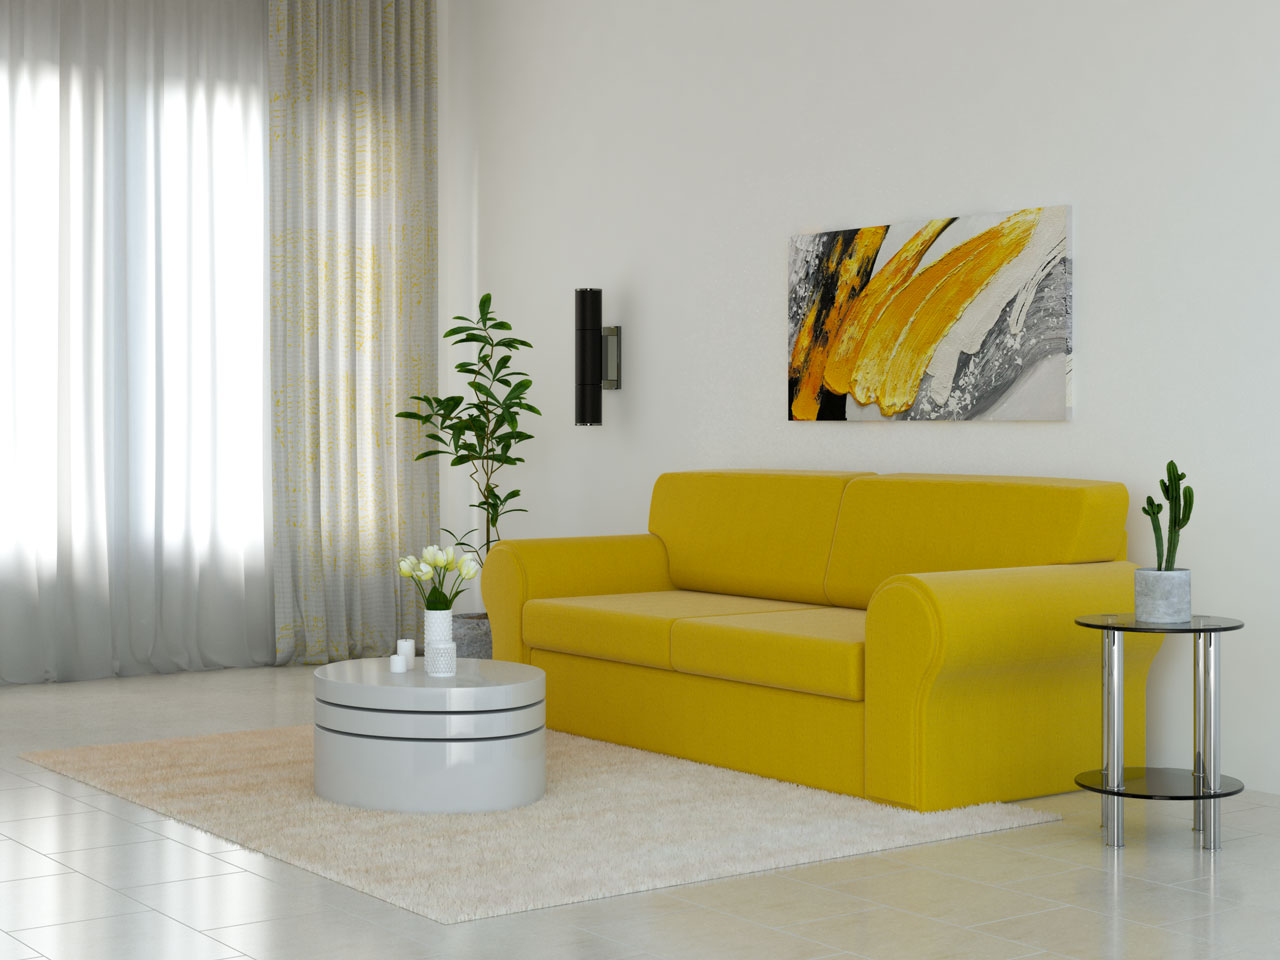 Cream rug with yellow couch